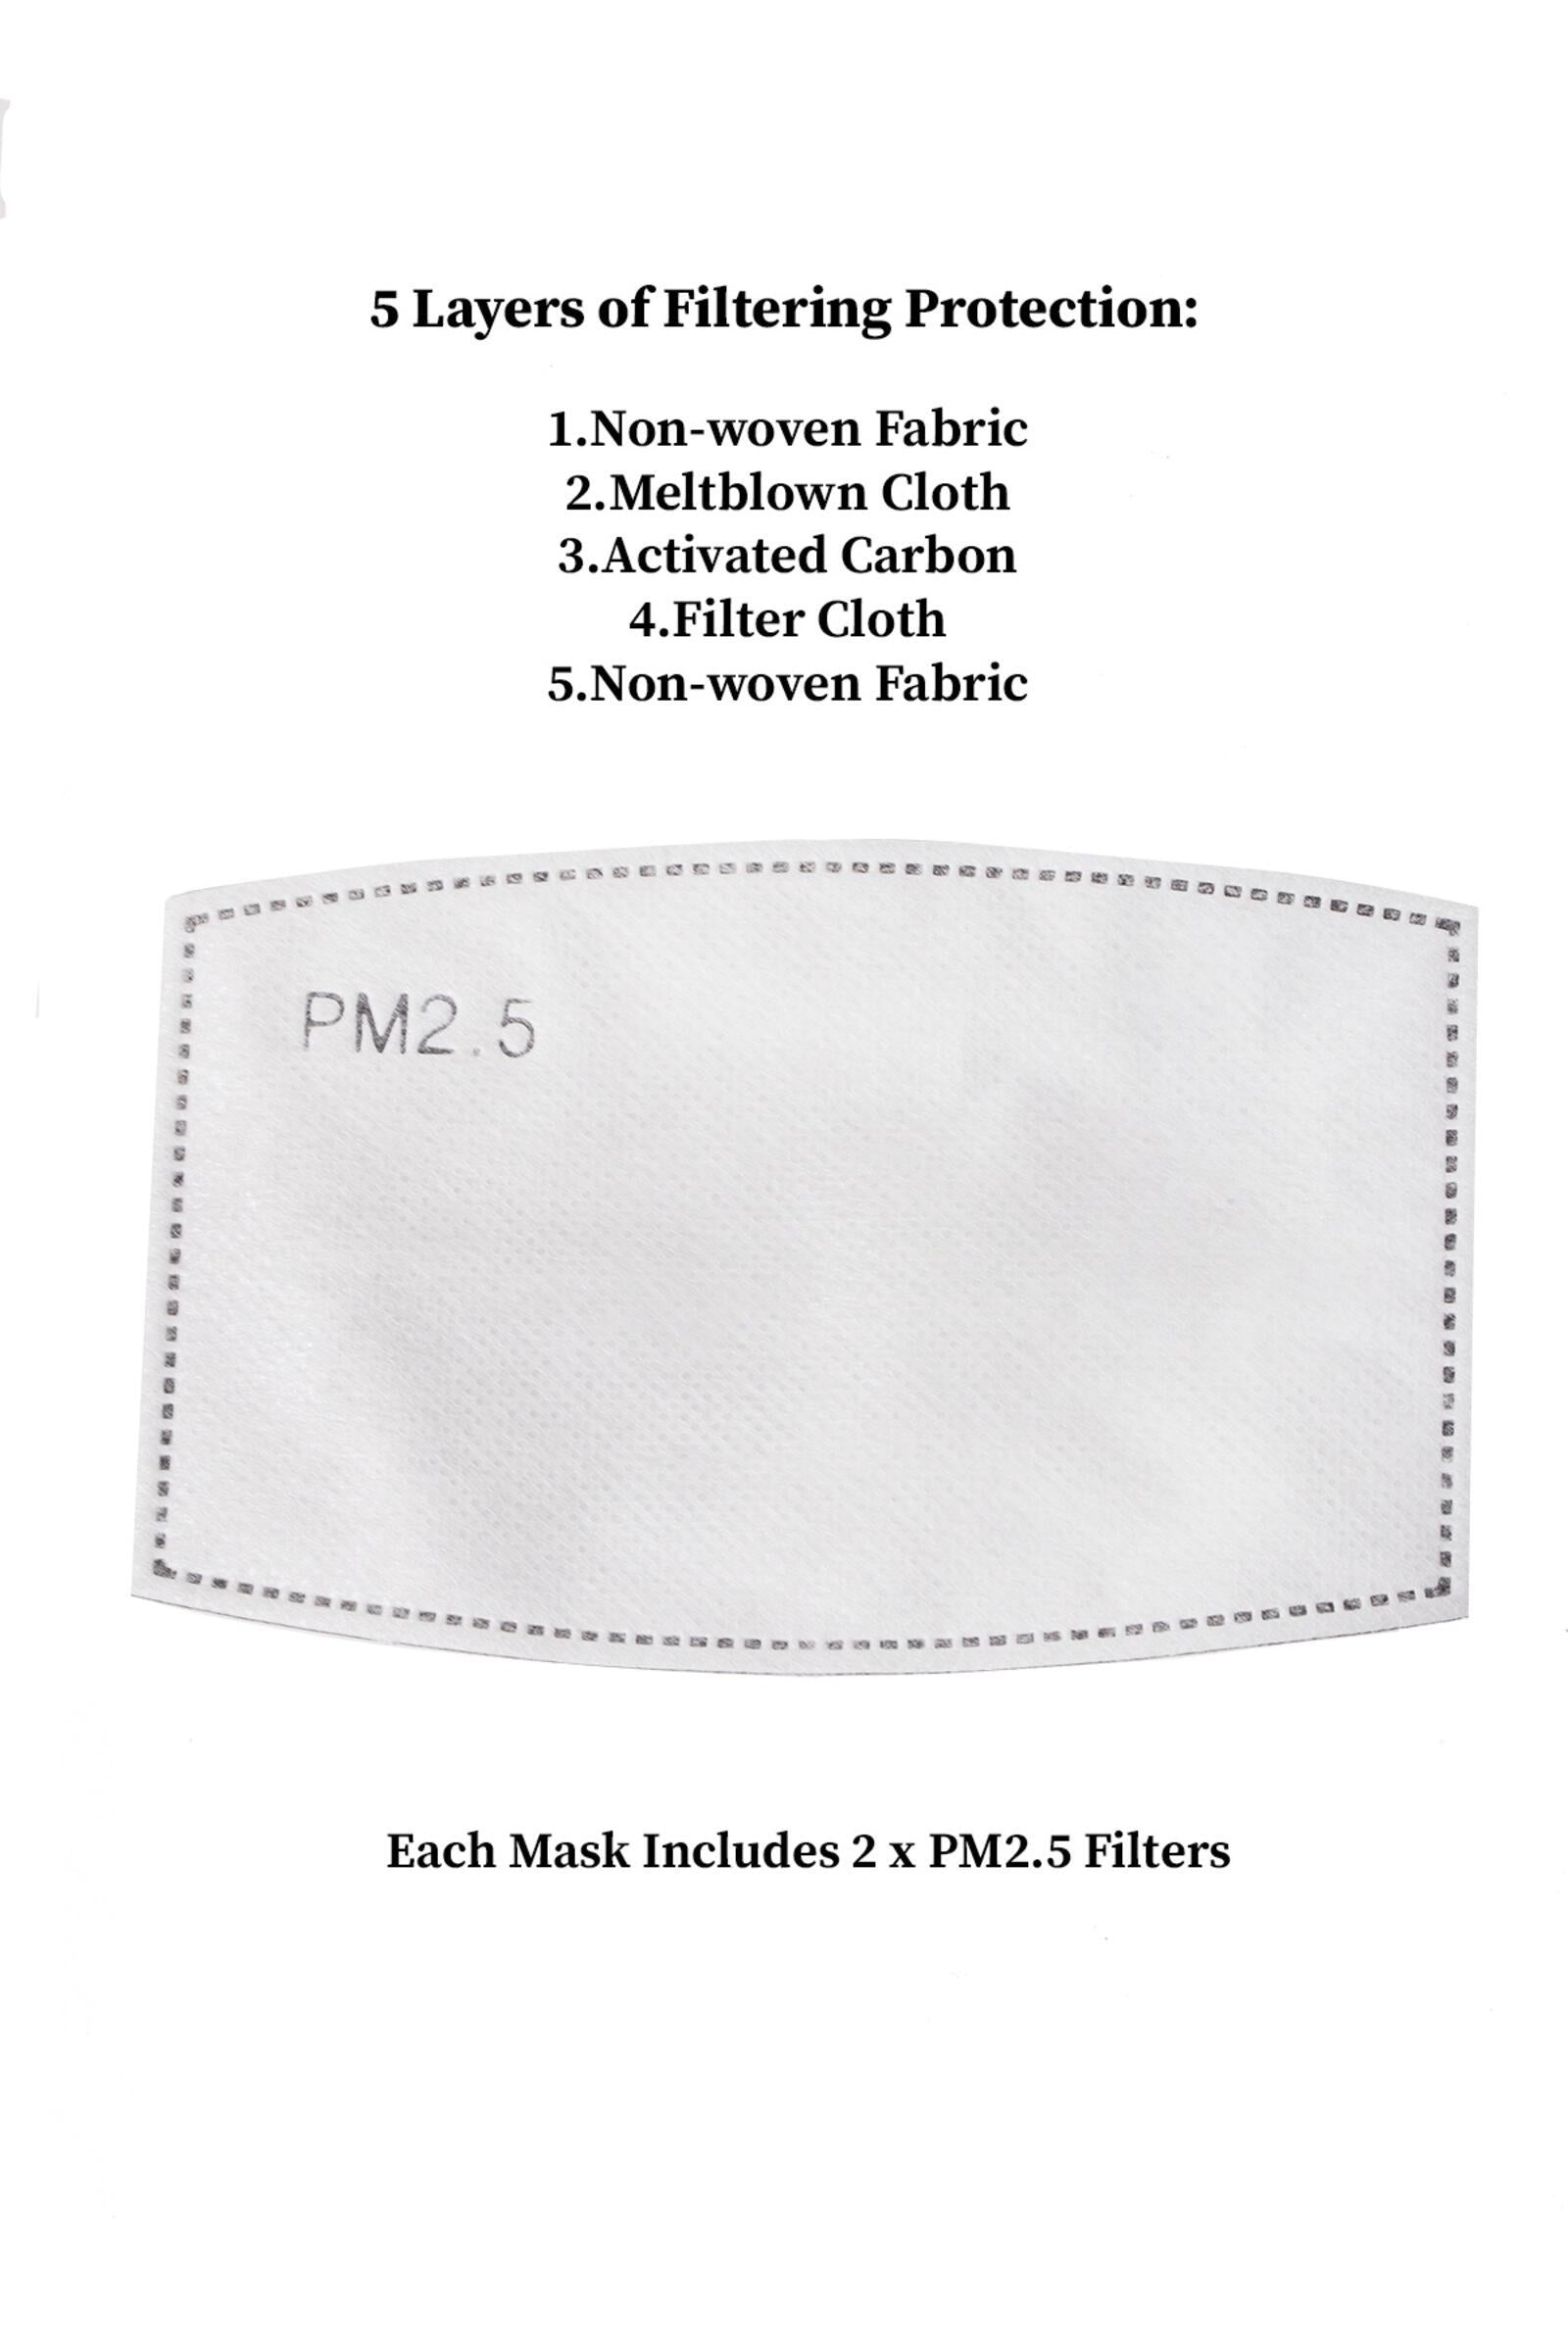 Pack of PM 2.5 Filter for Face Masks